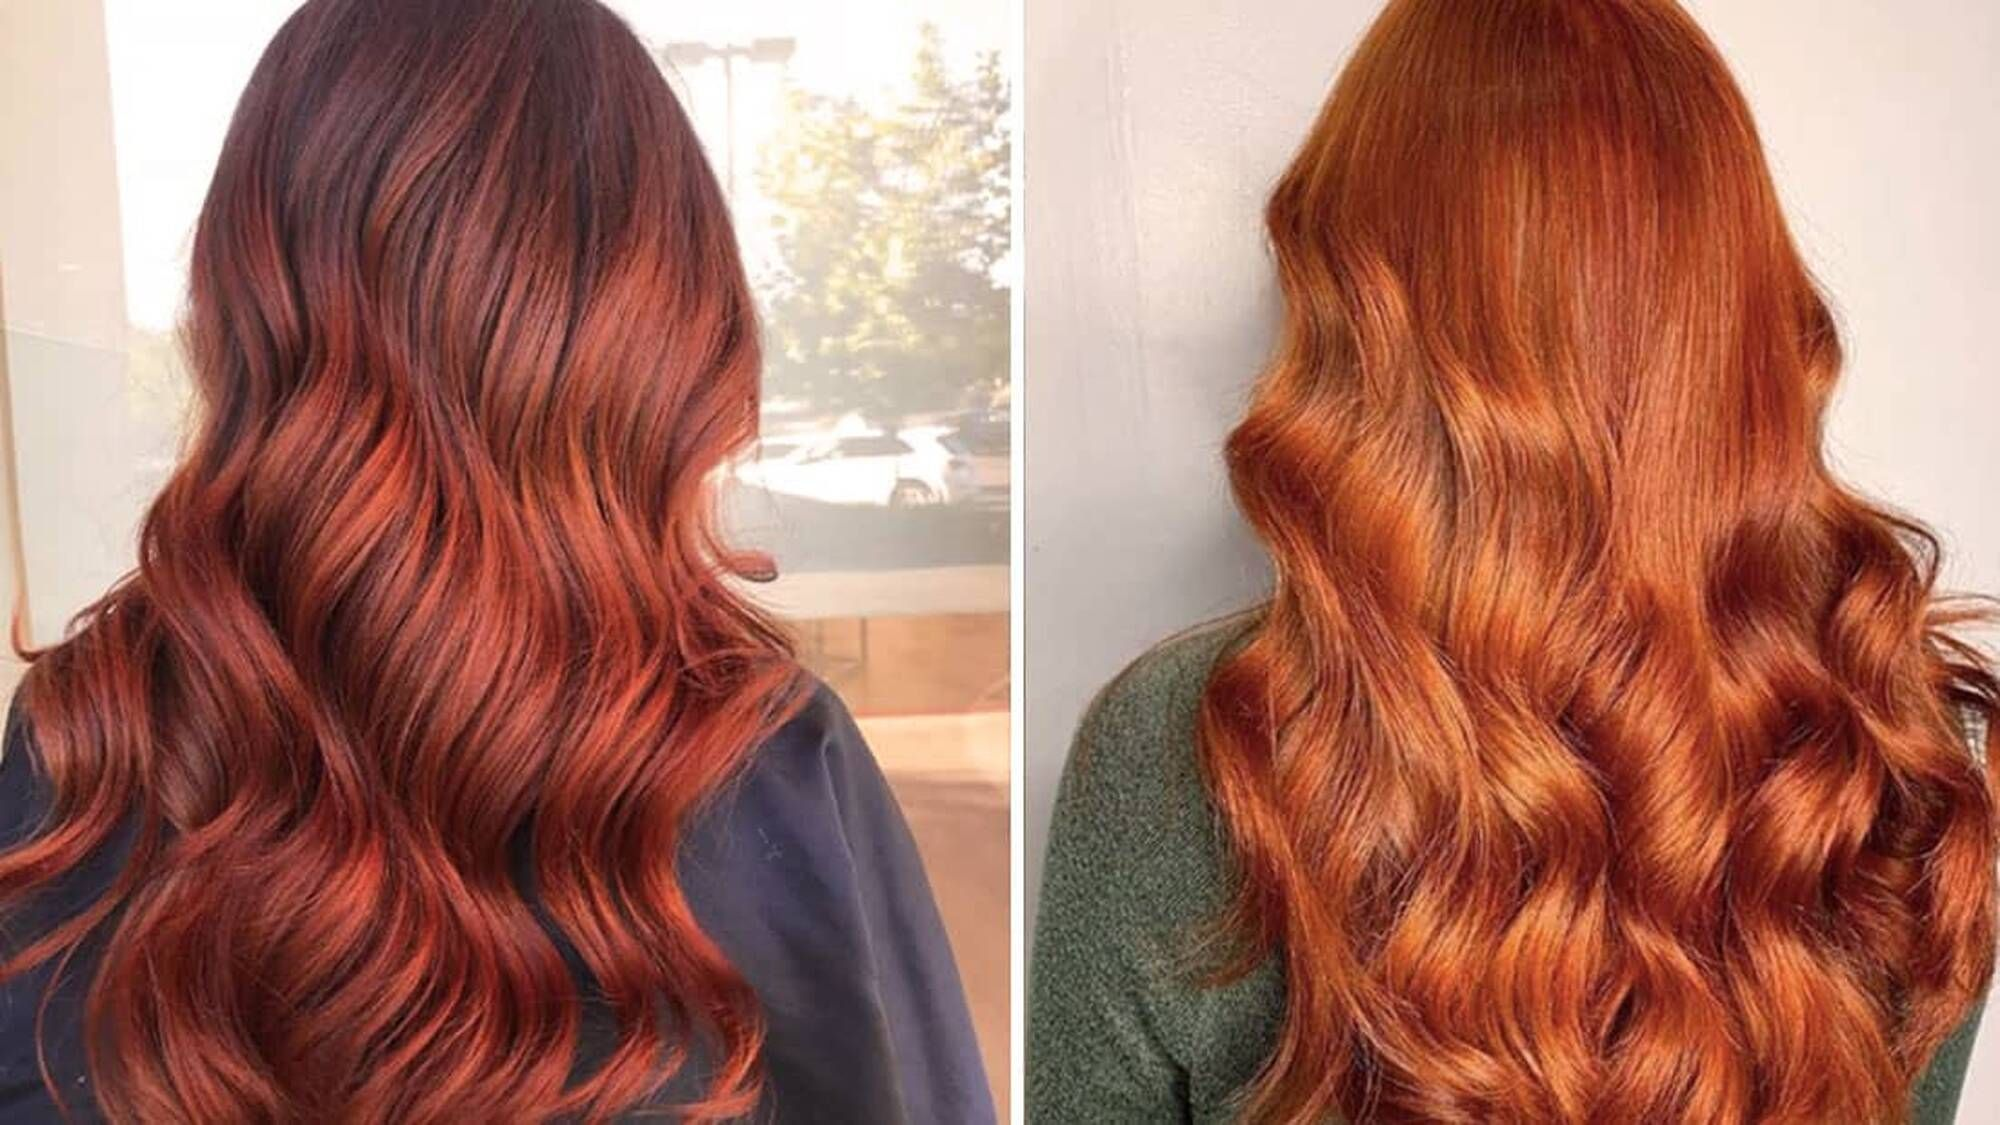 The 40 Hottest Red Hair Color Ideas For 2020 Hair Com In 2020 Red Hair Color Hair Color Hair